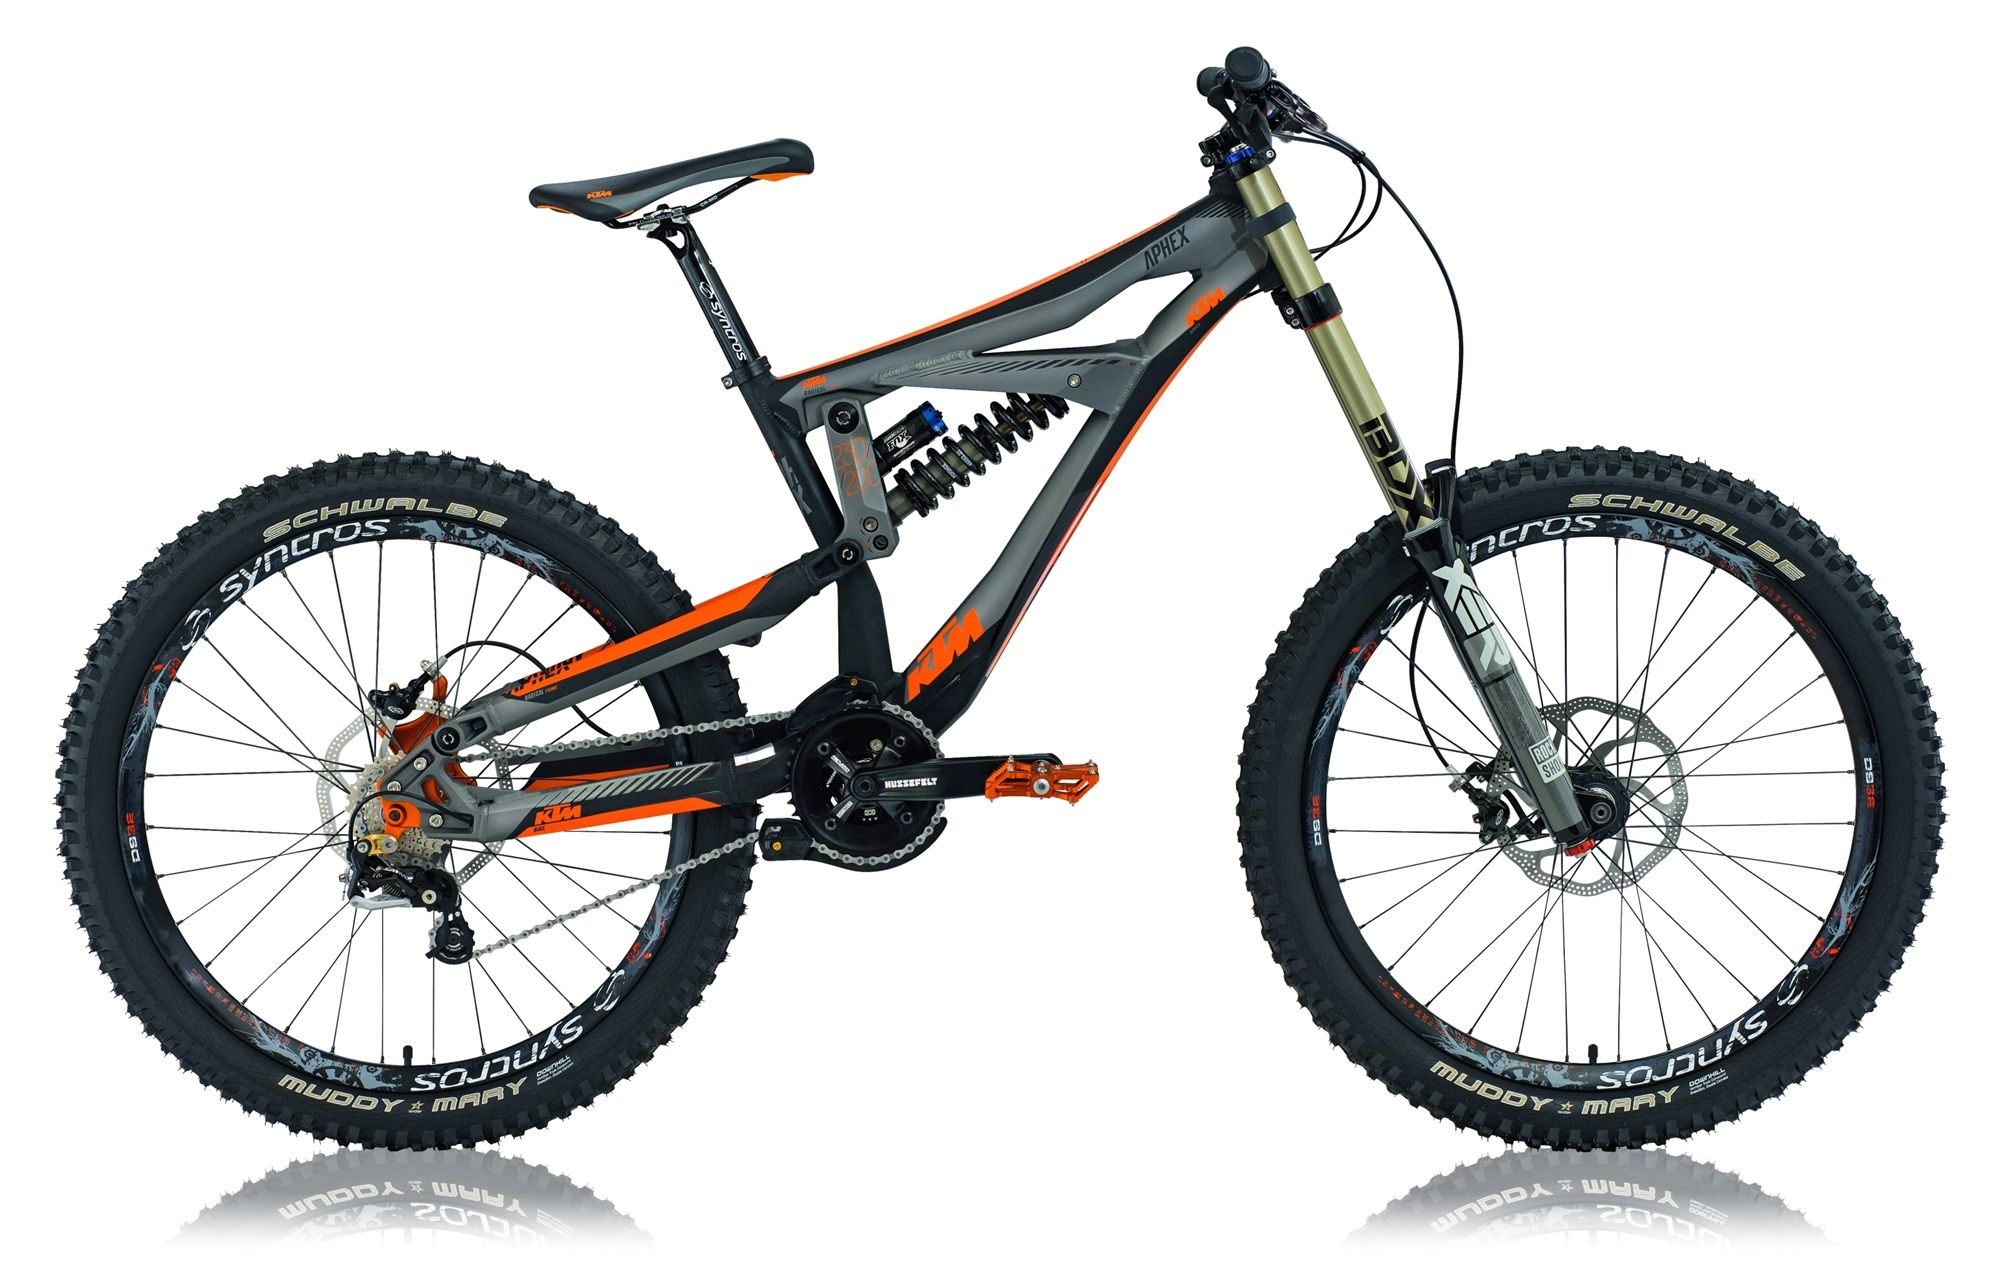 downhill bike ktm aphex 2012 mountain bikes. Black Bedroom Furniture Sets. Home Design Ideas